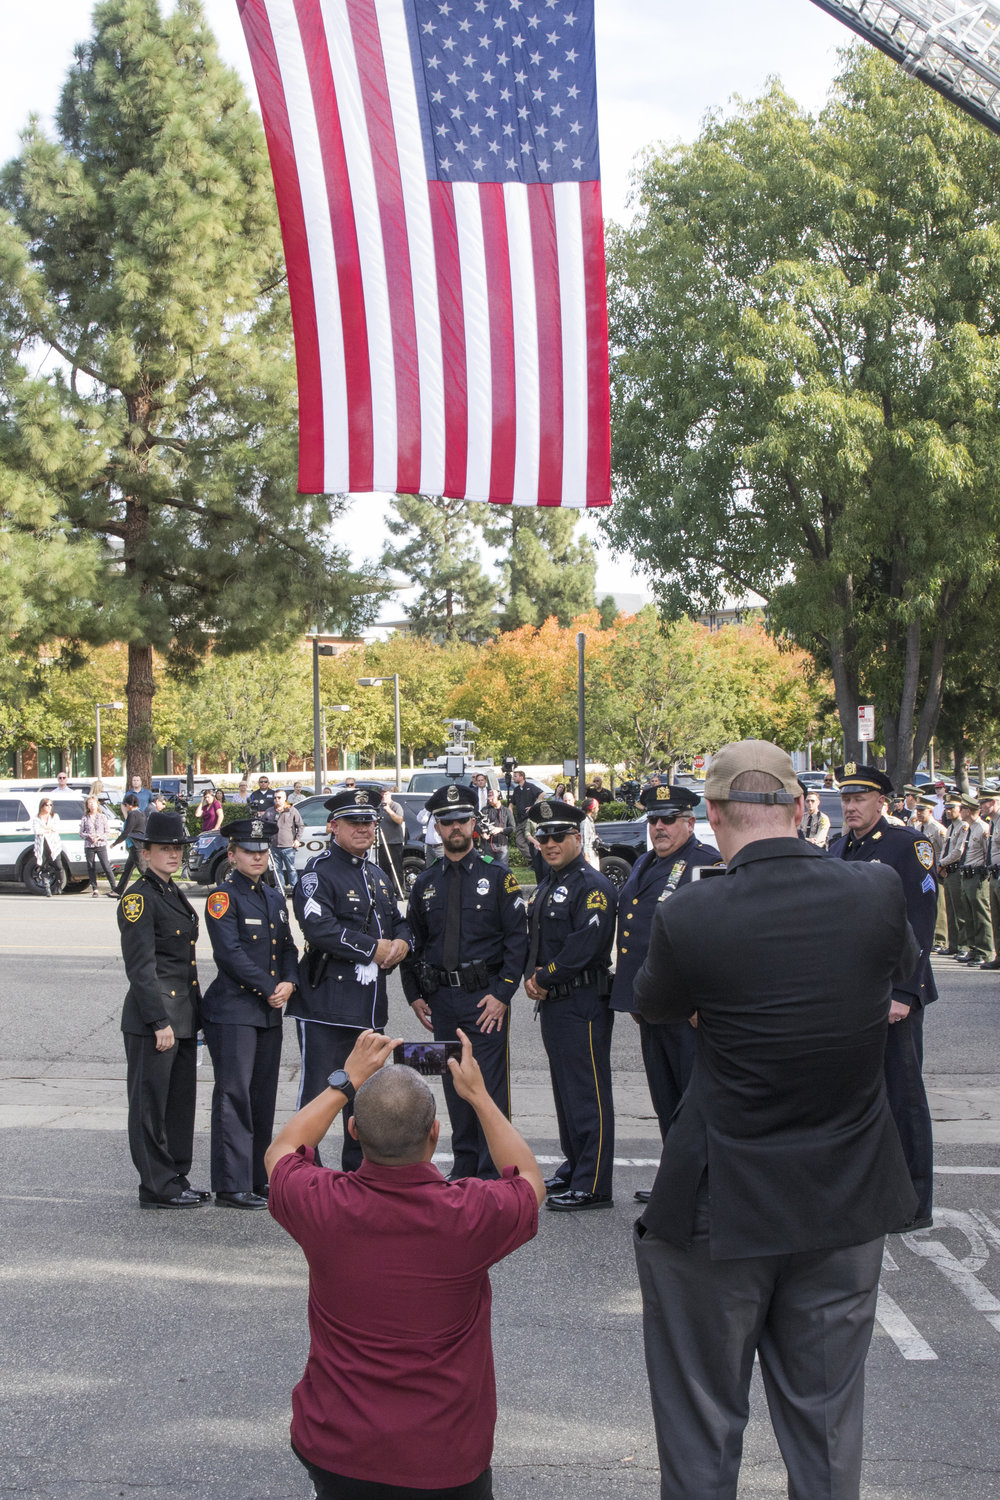 Law Enforcement Officers from Los Angeles Police Department, Dallas Police Department, and New York Police Department pose for a photo in front of an American Flag at the Calvary Community Church in Westlake Village, California on November 15, 2018. (Zane Meyer-Thornton/Corsair Photo)